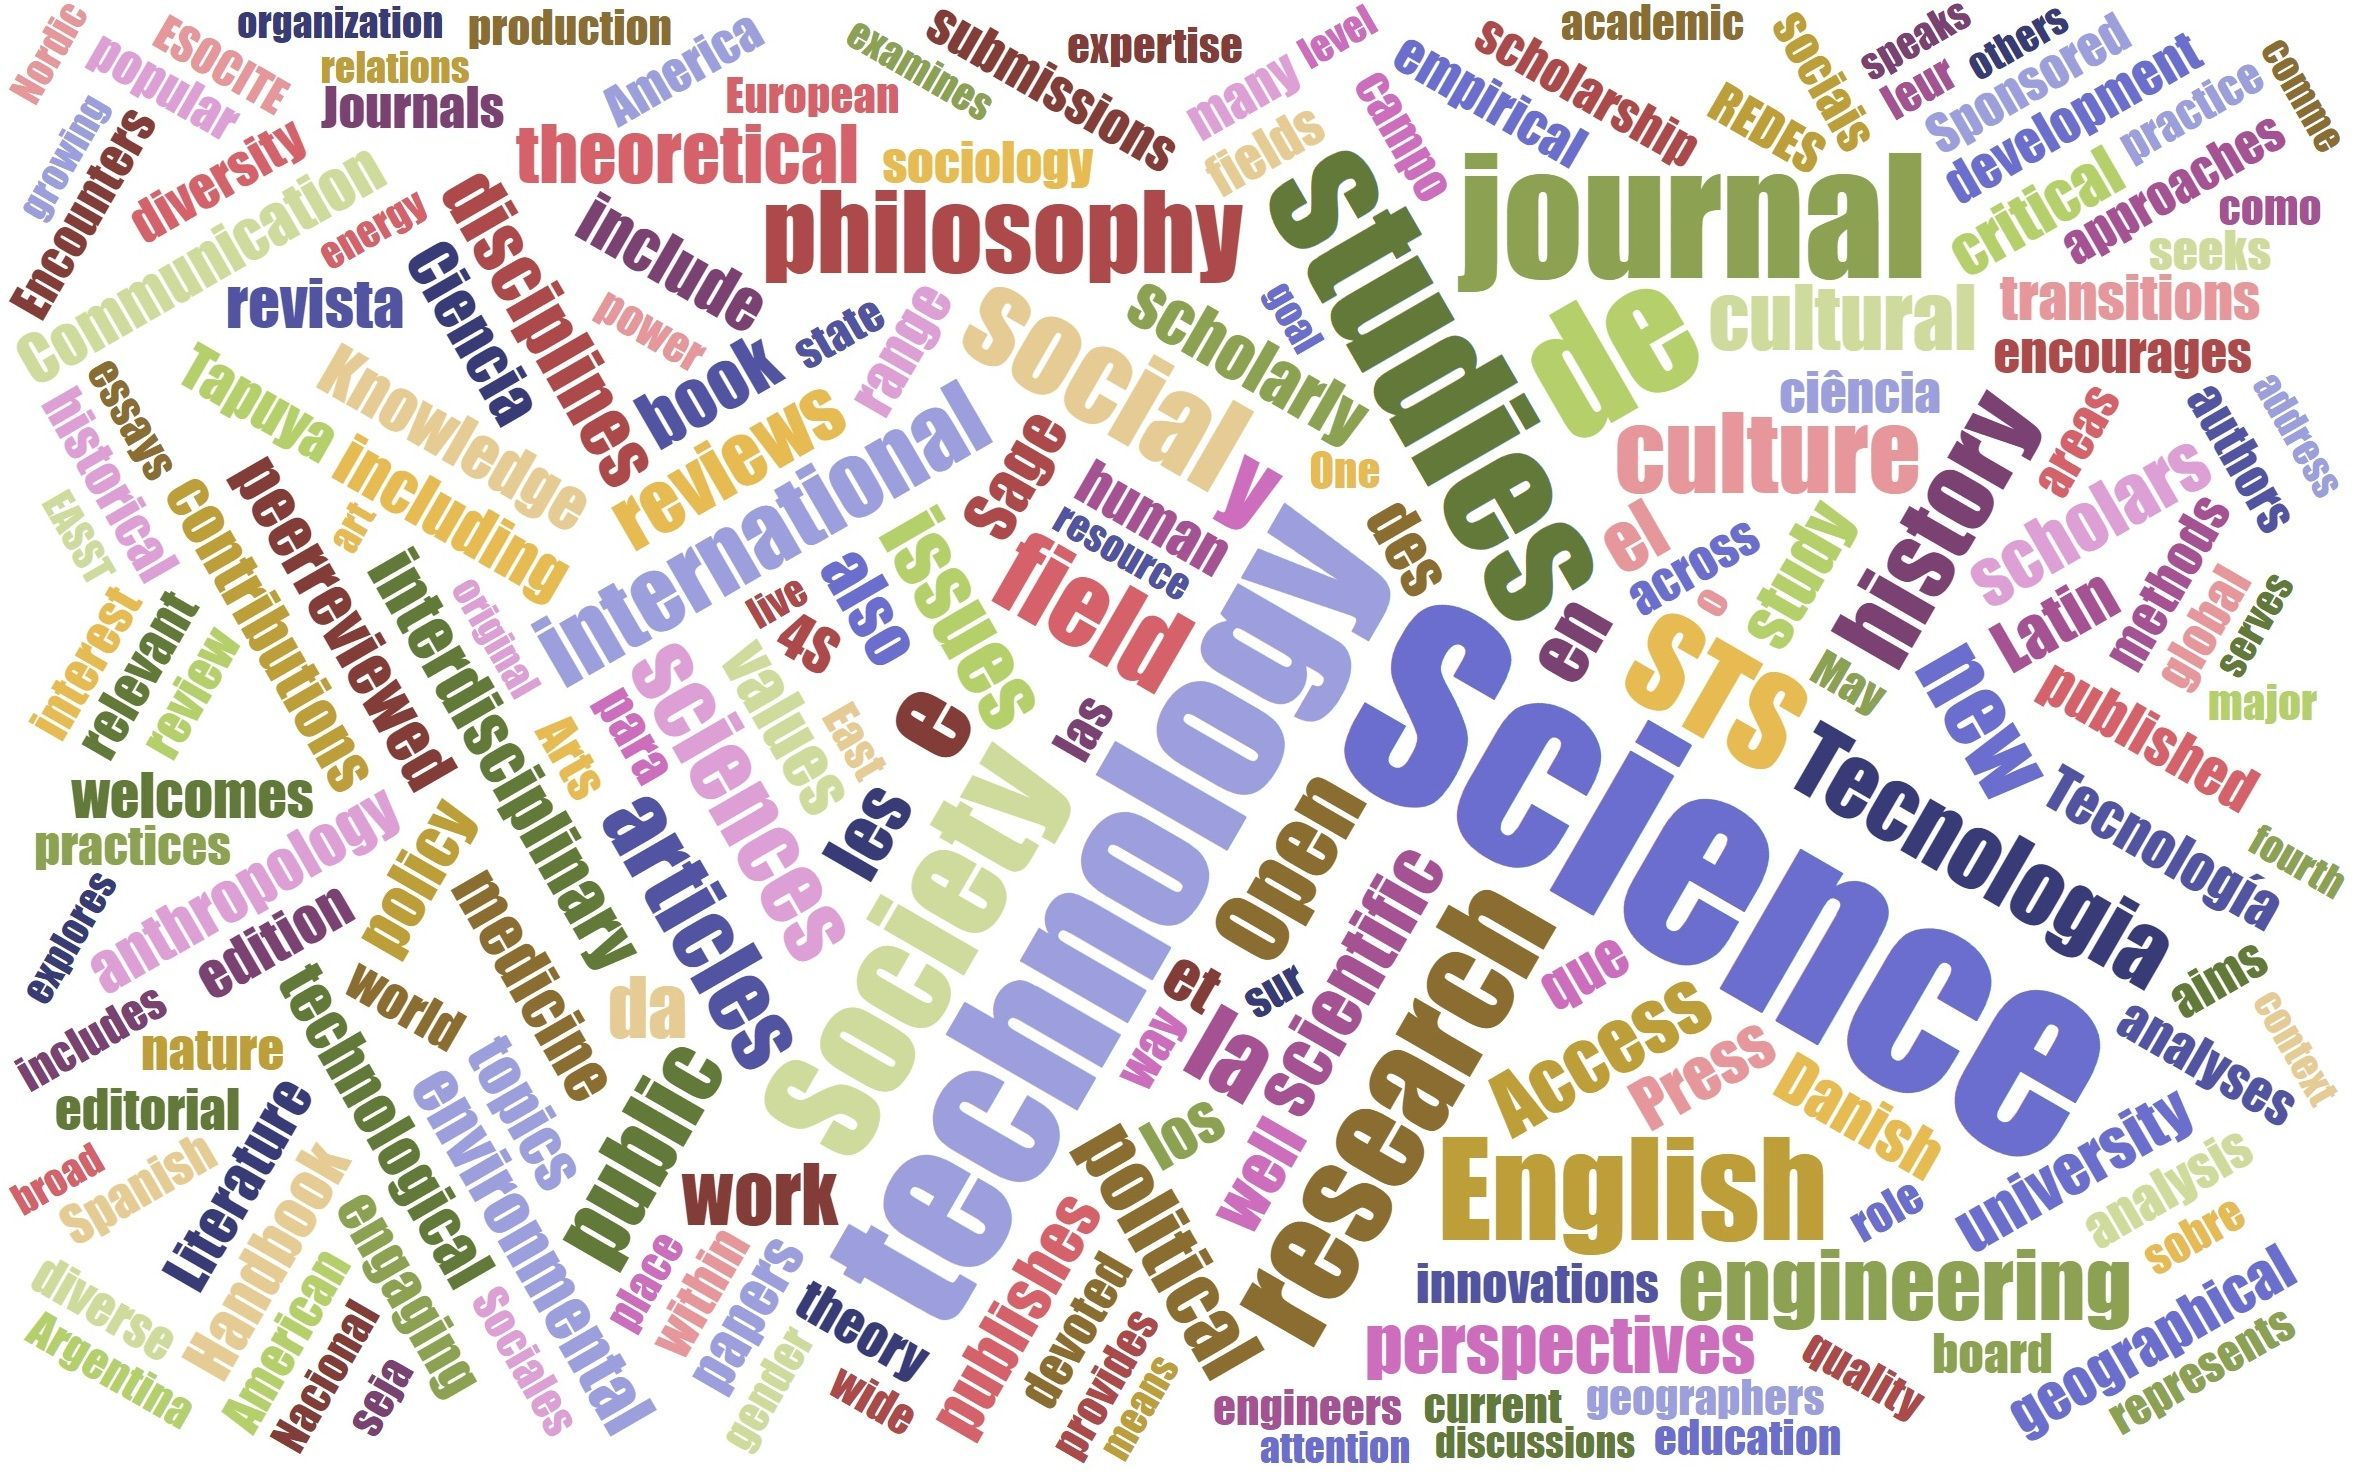 STS Publications Word Cloud